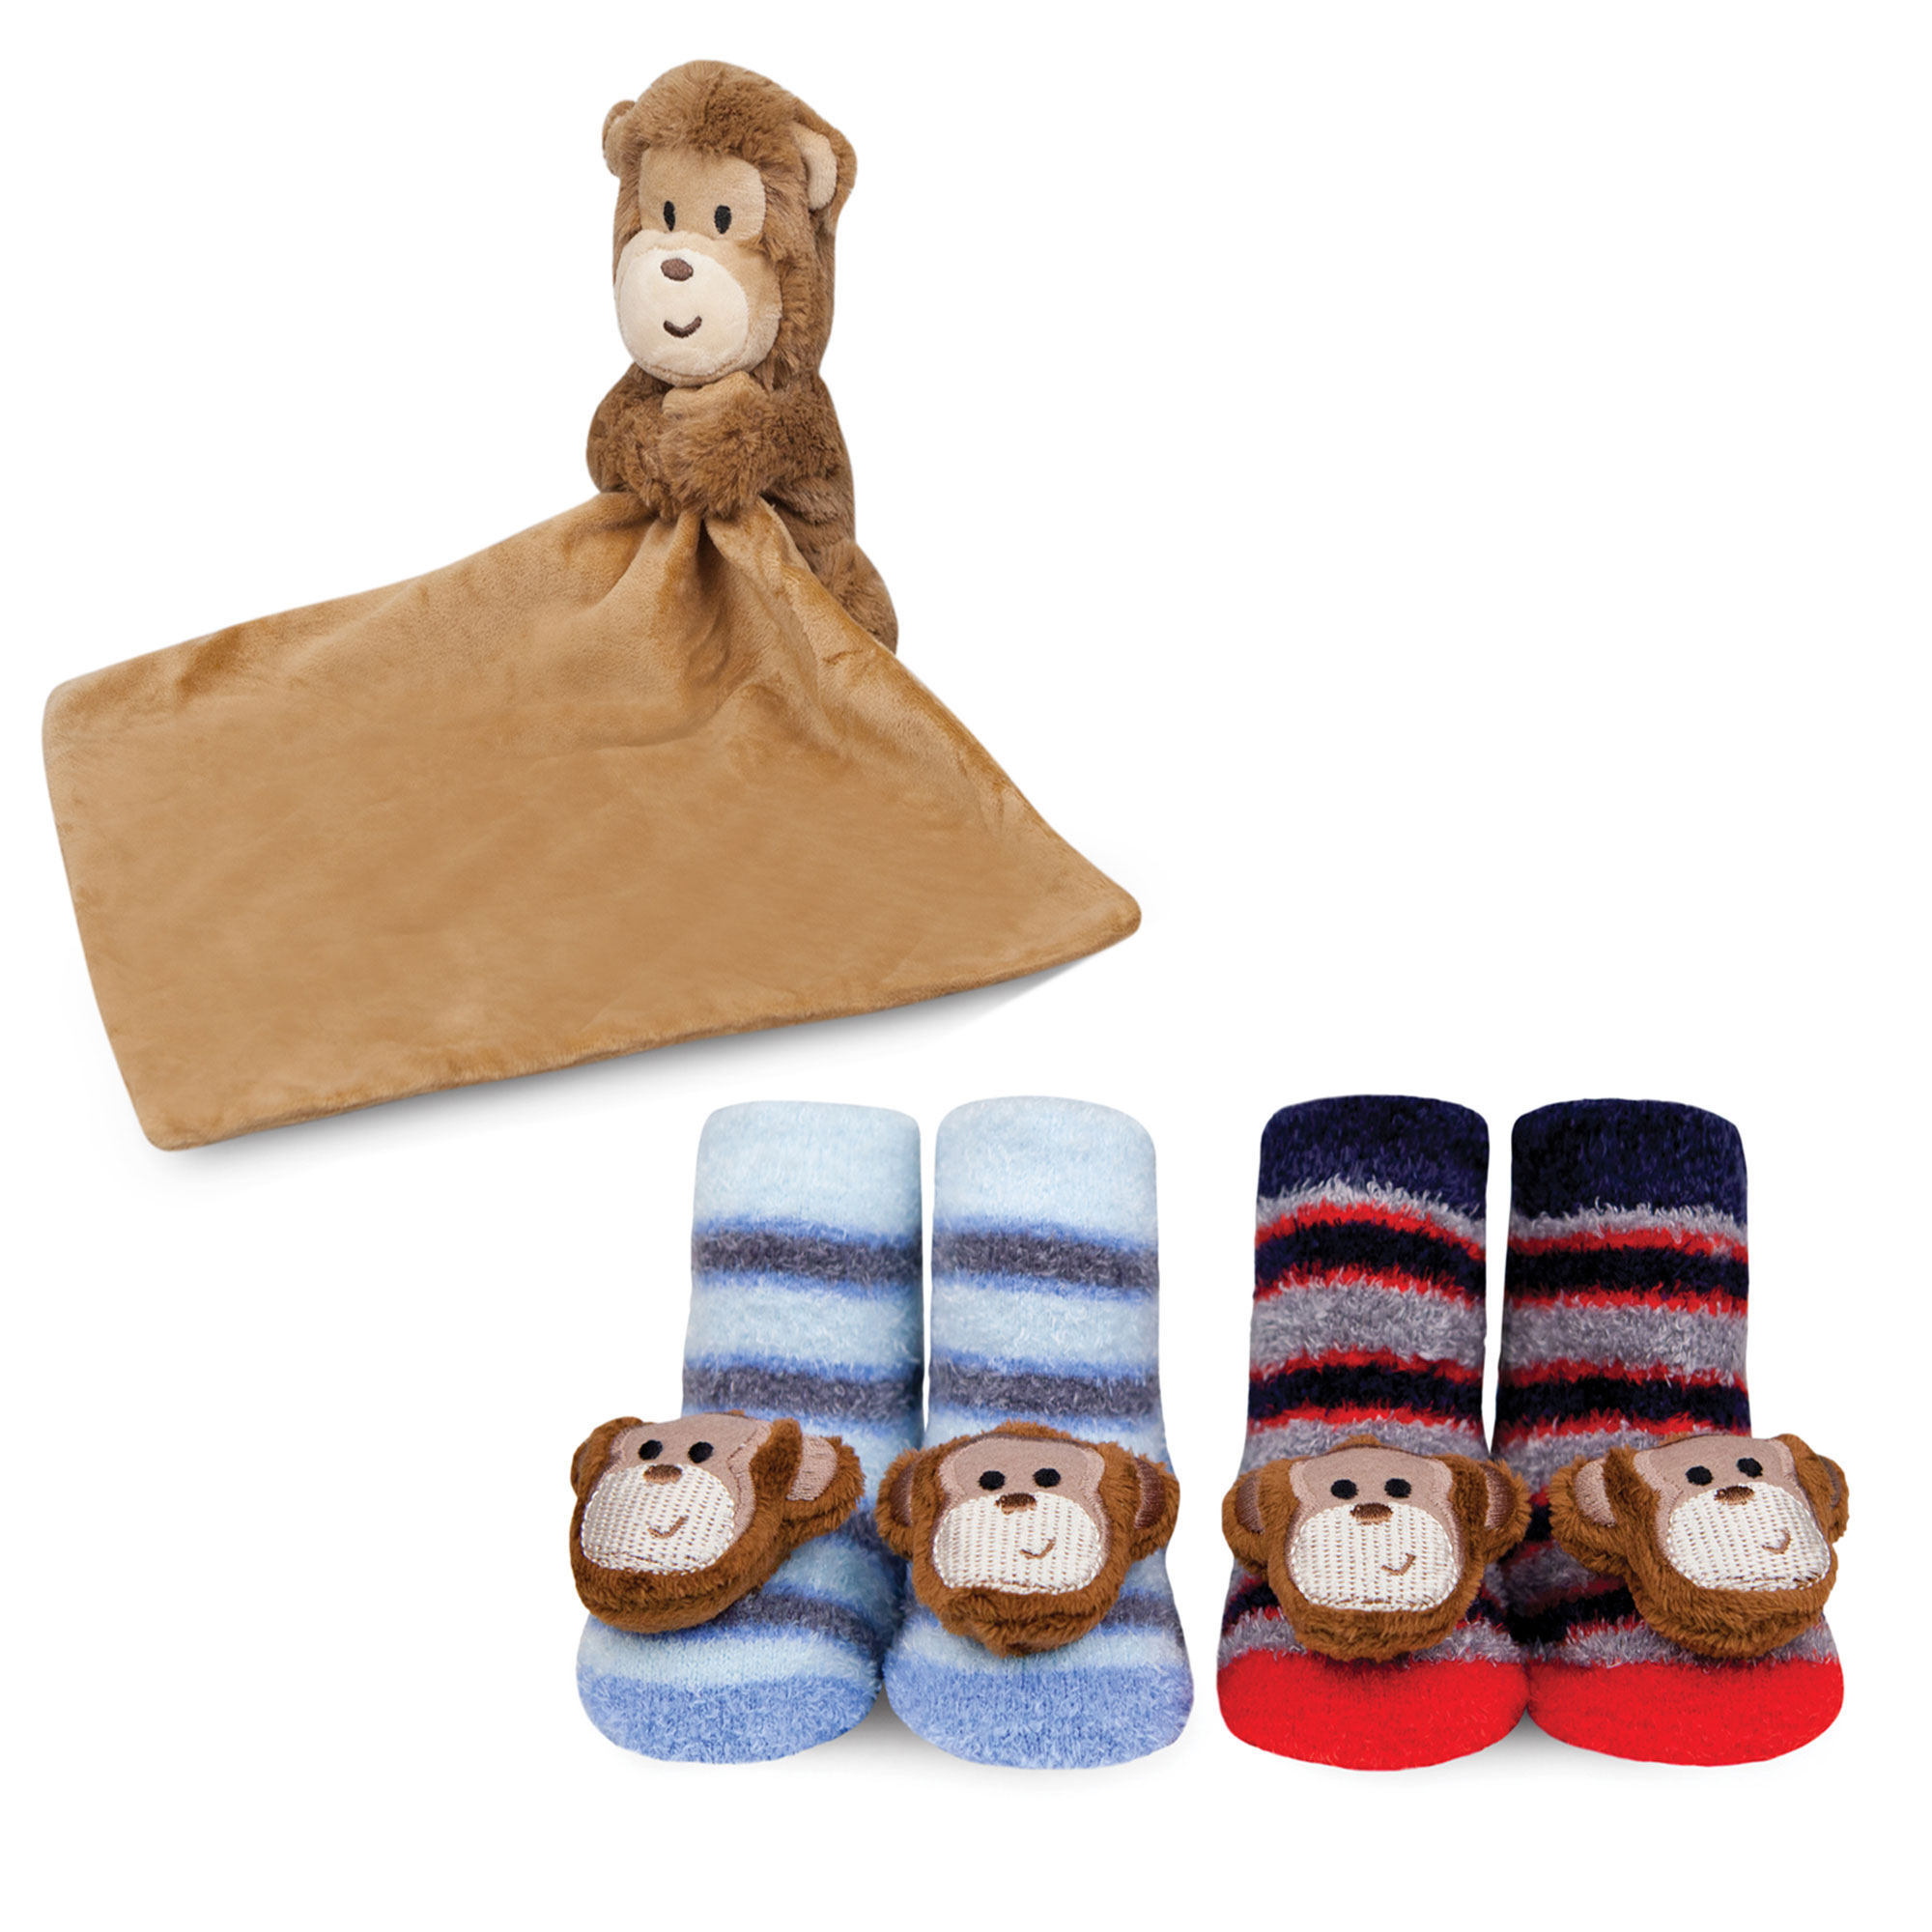 Waddle Baby Gift Set Plush Monkey Security Blanket and Newborn Rattle Socks by Waddle and Friends